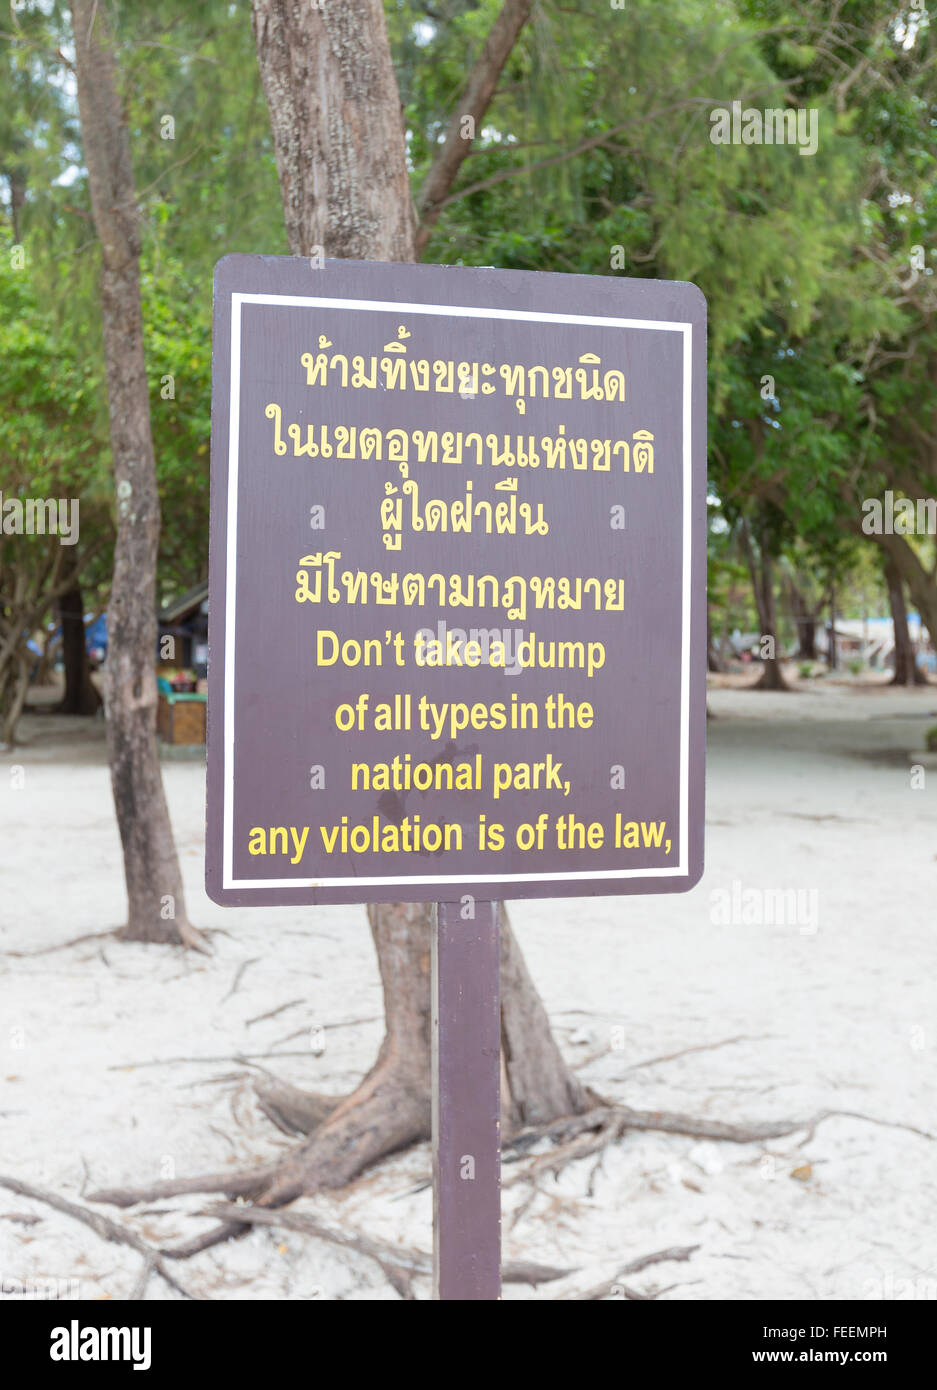 Amusing english mistake on a beach sign in Thailand - Stock Image